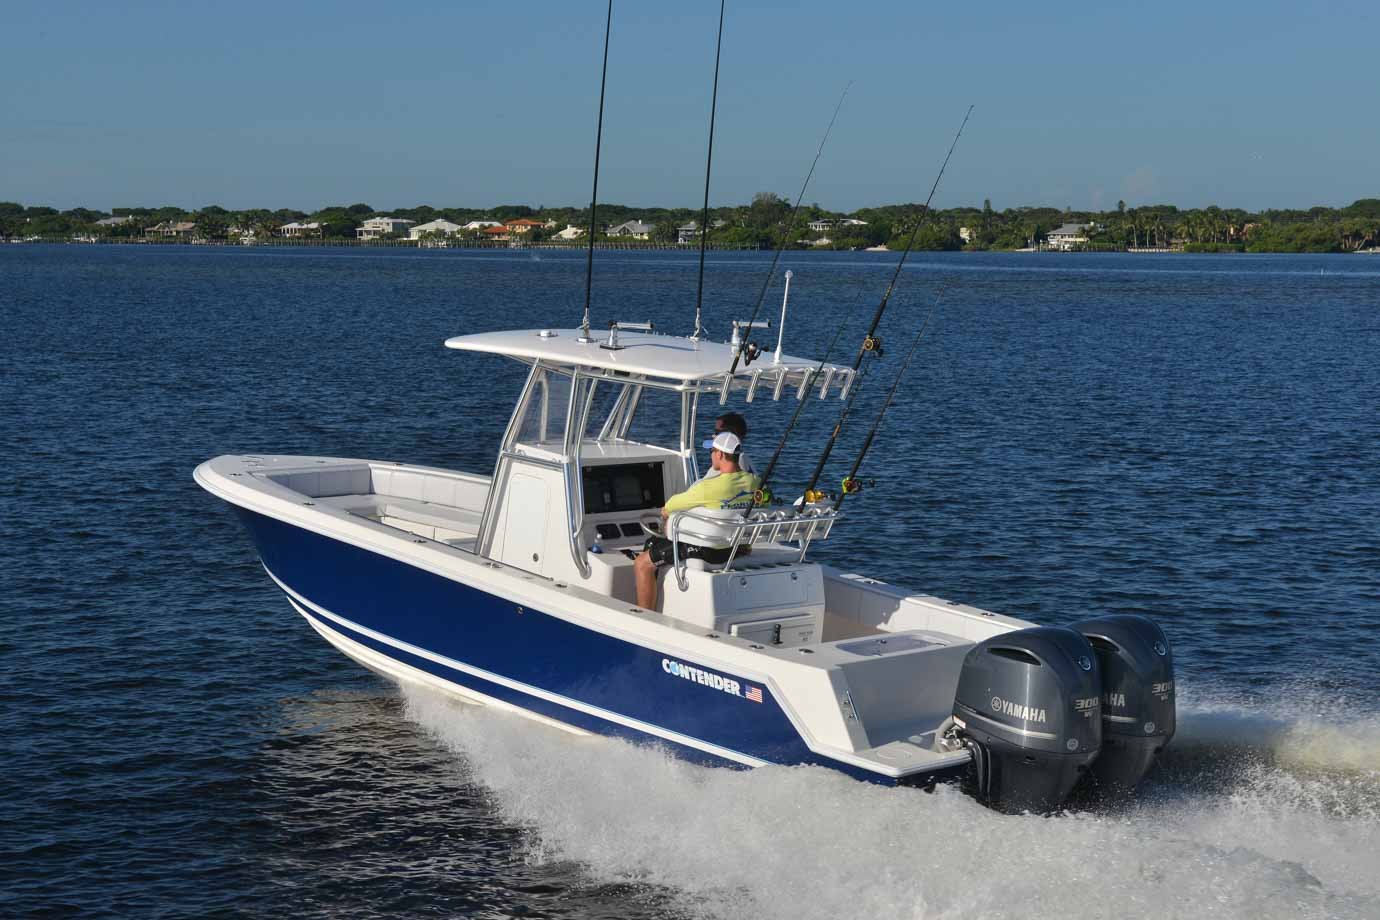 How to Buy a Used Boat How to Buy a Used Boat new picture